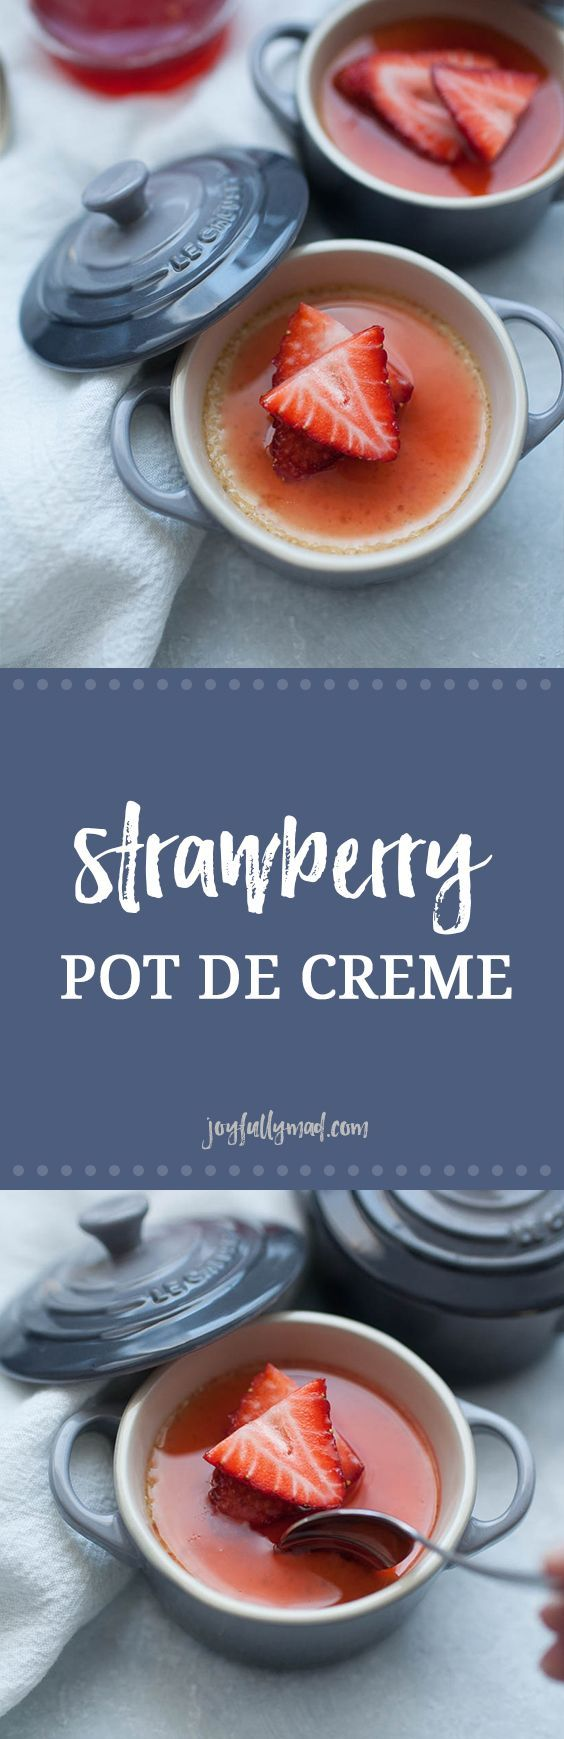 The perfect dessert for two: Strawberry Pots de Creme! A sweet, simple French dessert custard made with a homemade strawberry syrup,heavy whipping cream, egg yolks, vanilla bean and a dash of salt. These pots de creme are perfect for a special celebration orjust because. Serve them in individual custard ramekins and top with a splash of homemade strawberry syrup! via @joyfullymad